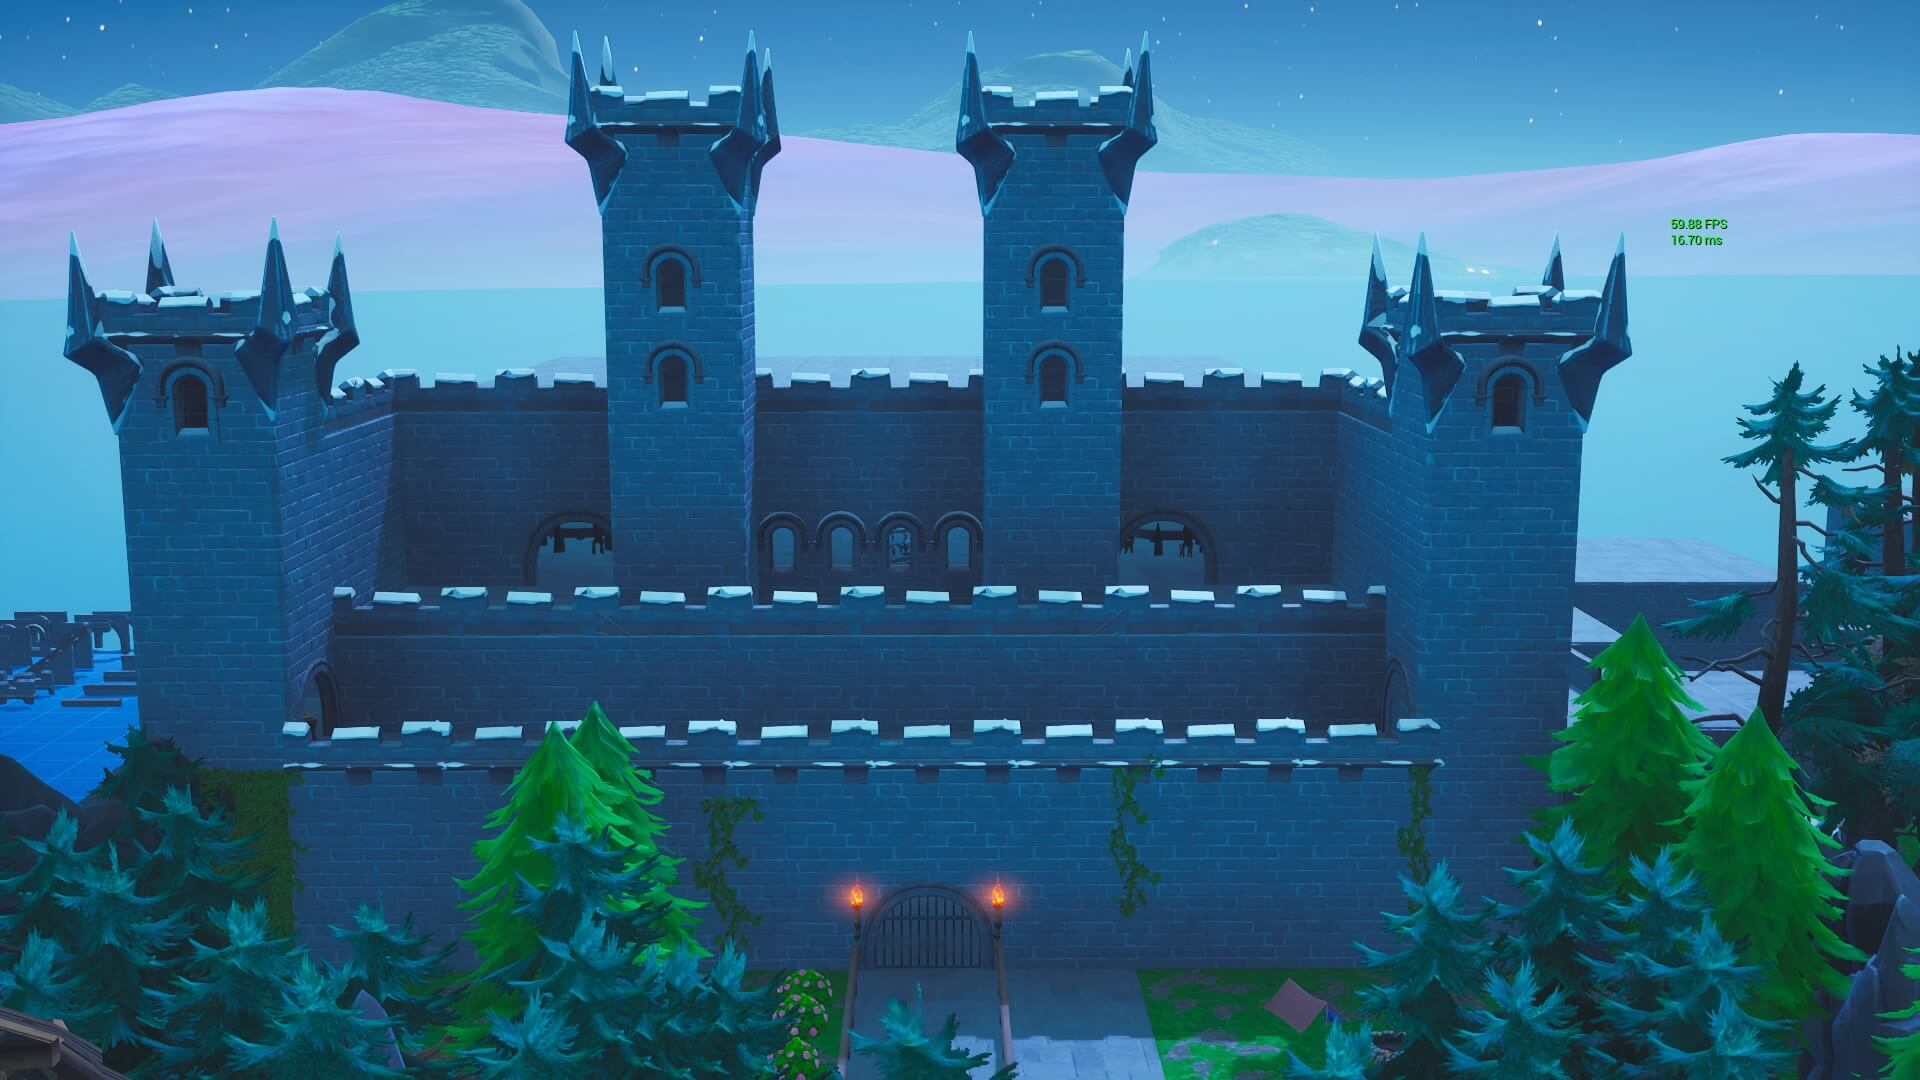 CASTLE ESCAPE/PUZZLE